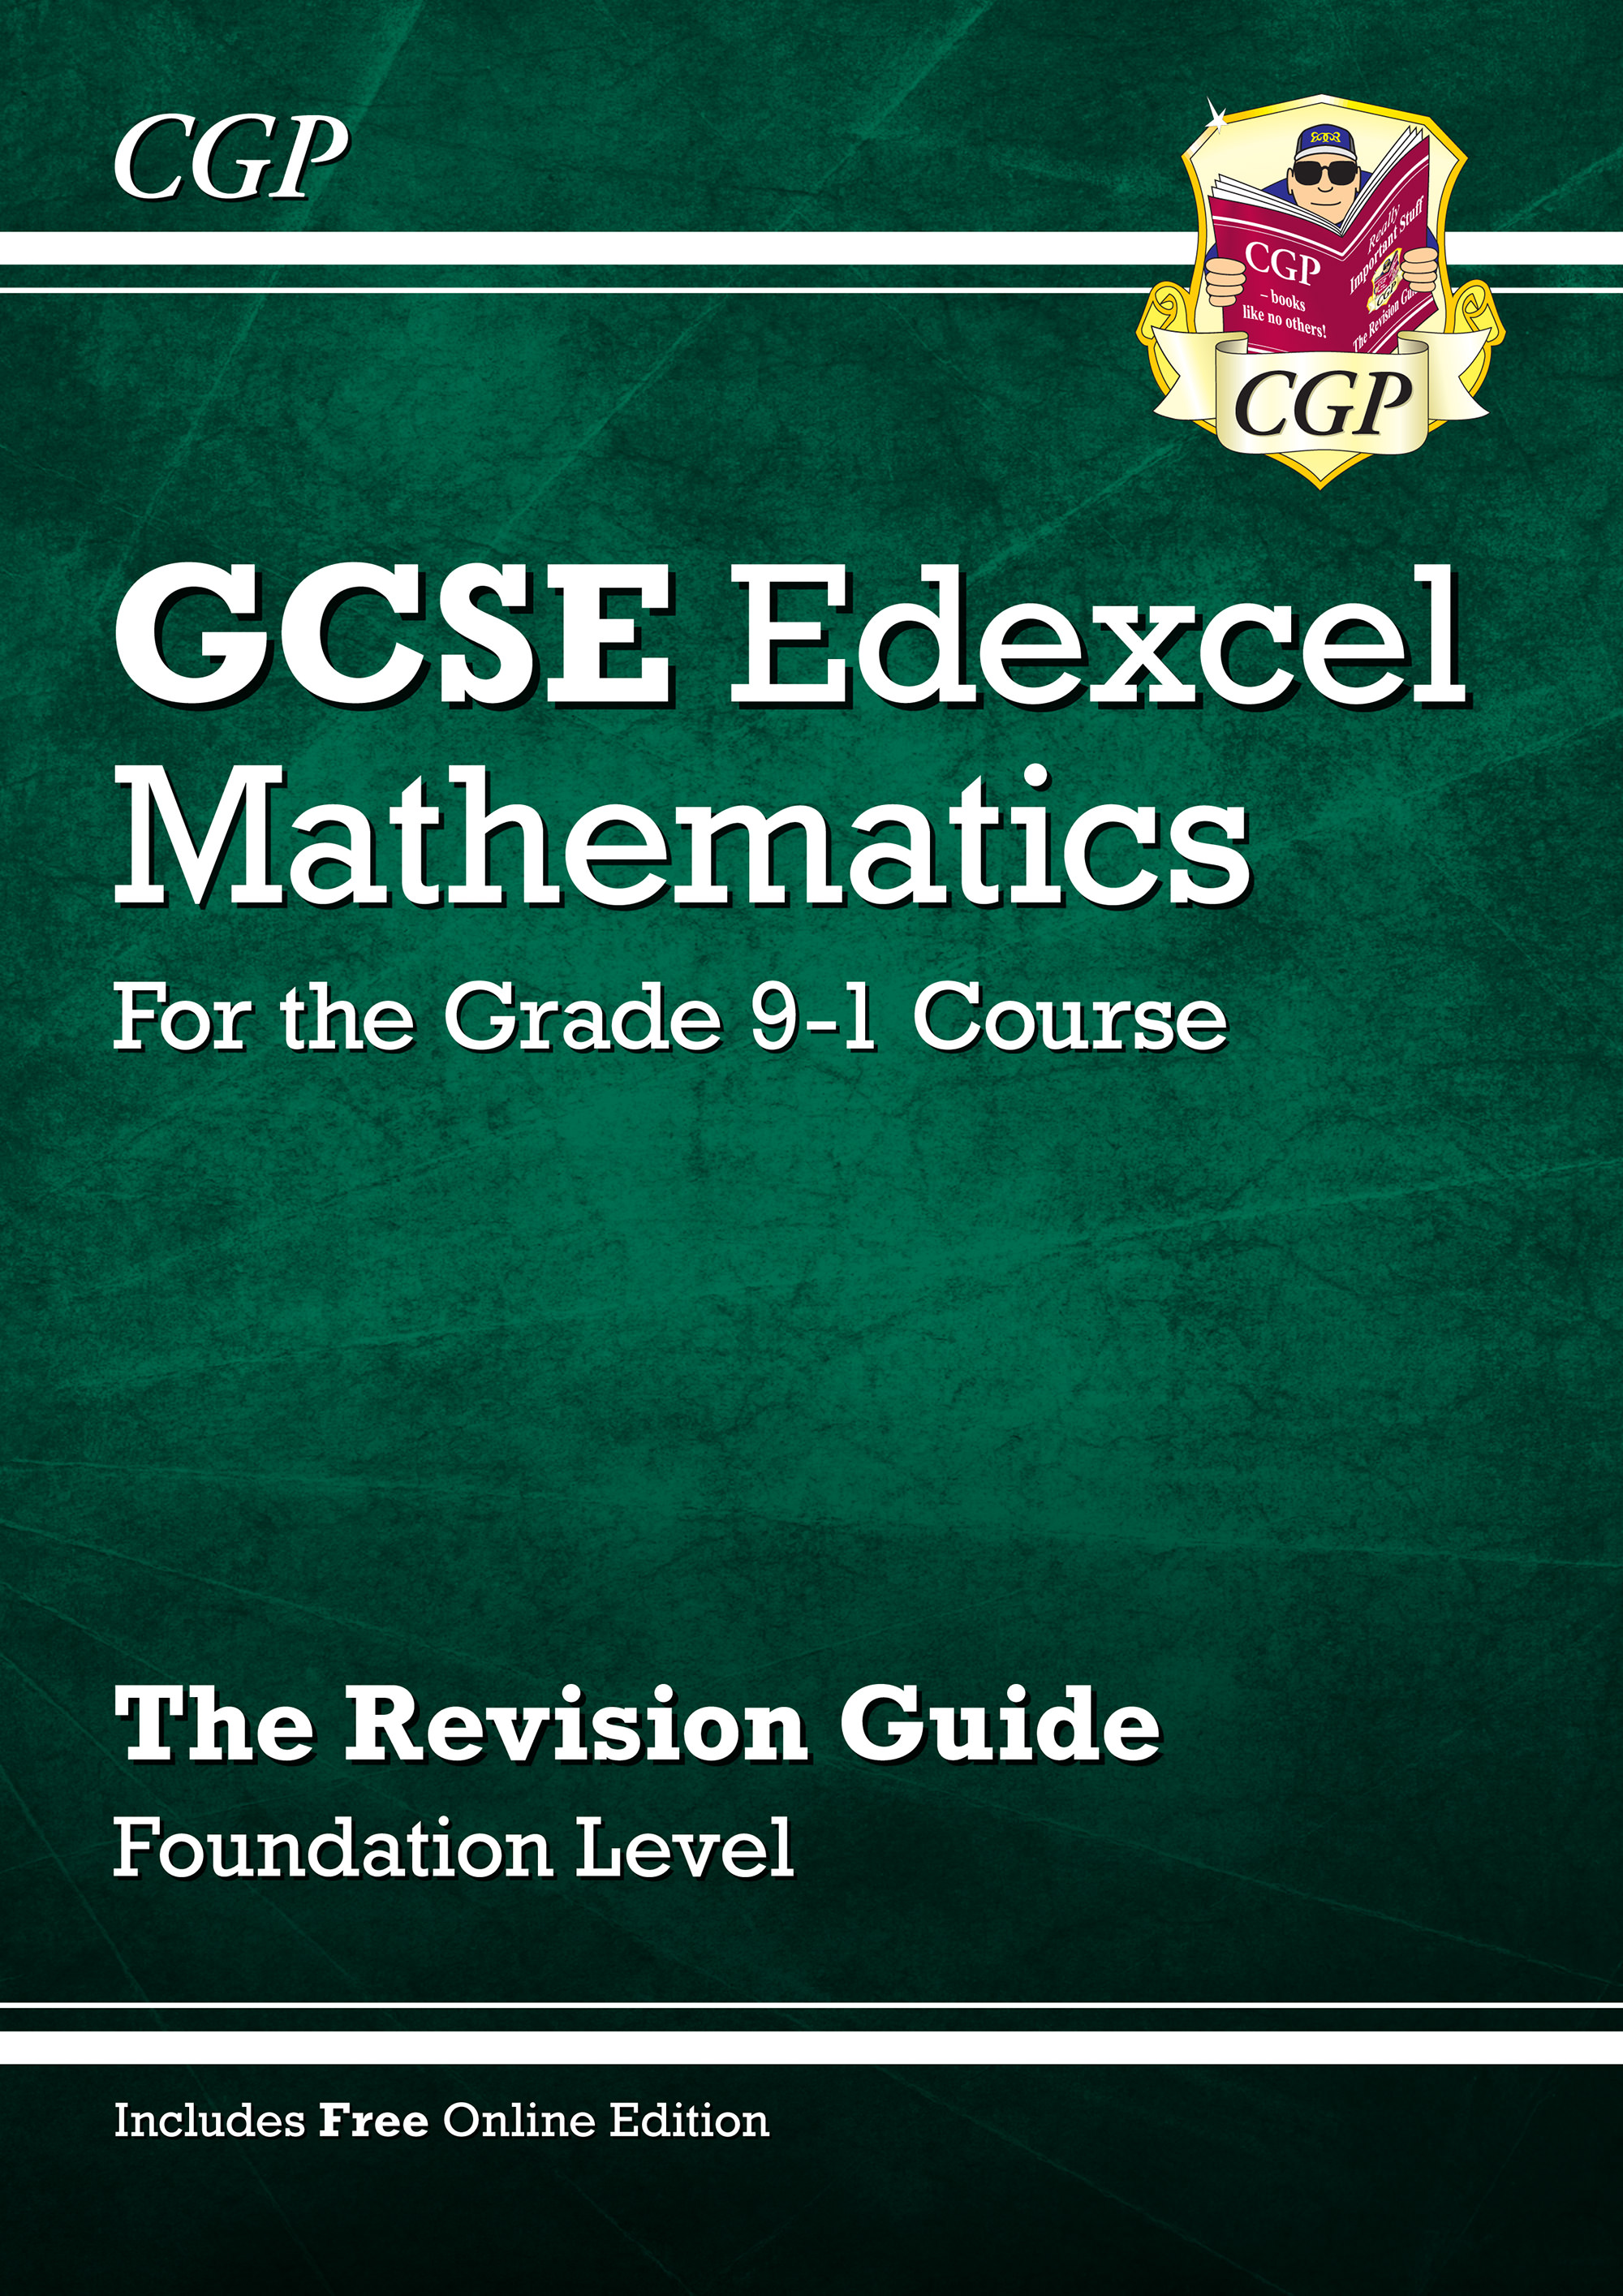 GCSE Maths | CGP Books